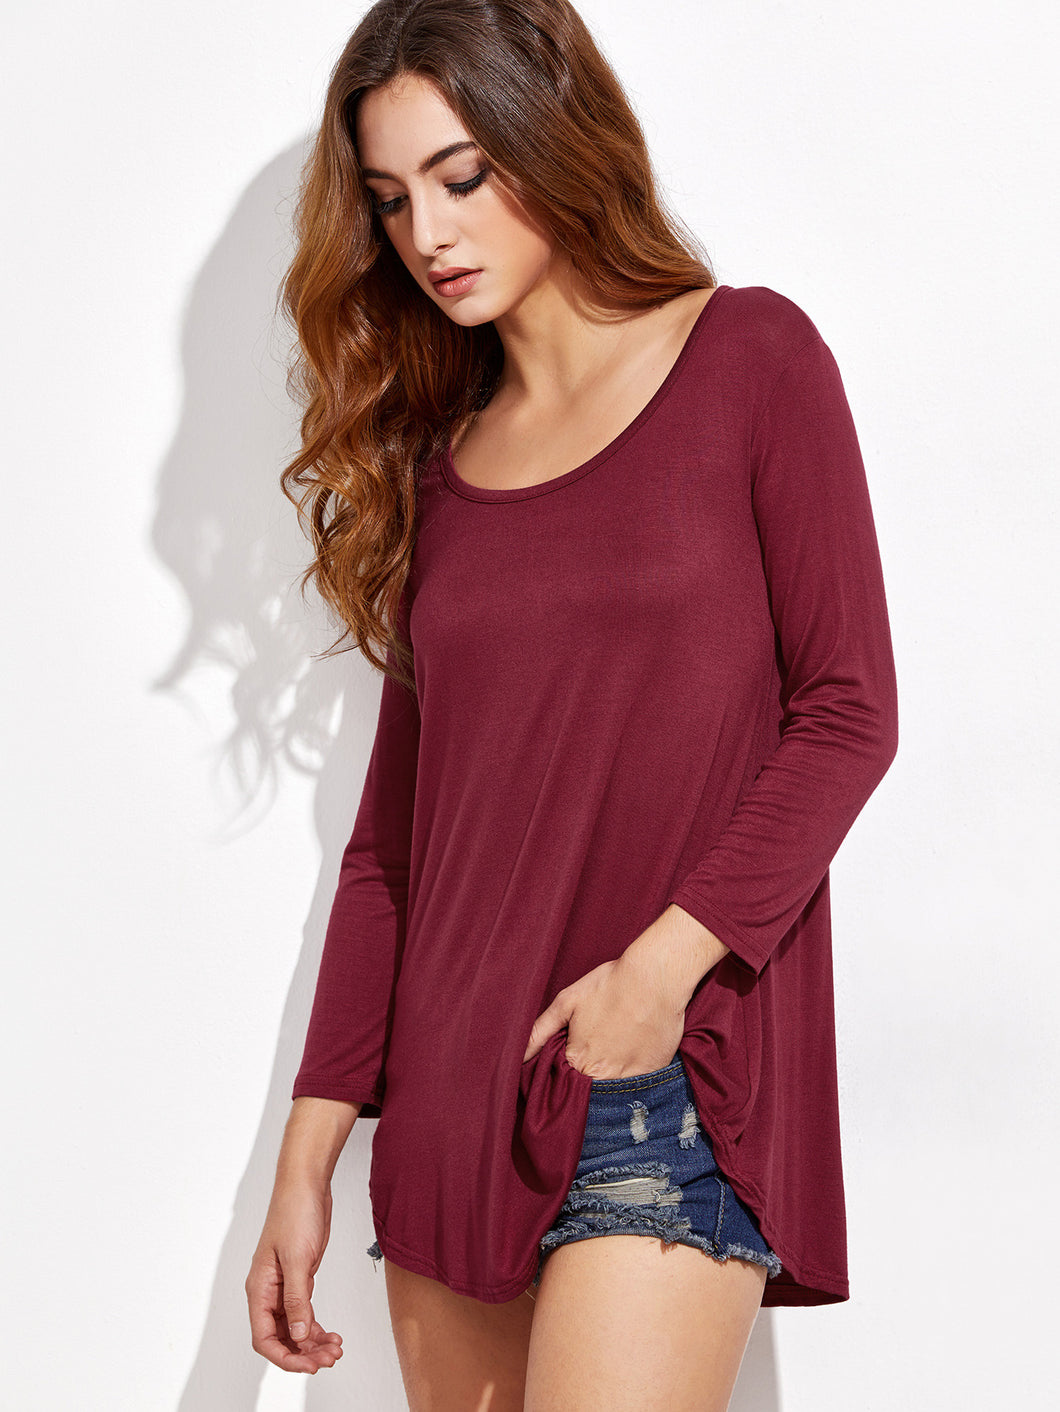 Merlot Long Sleeve Tee